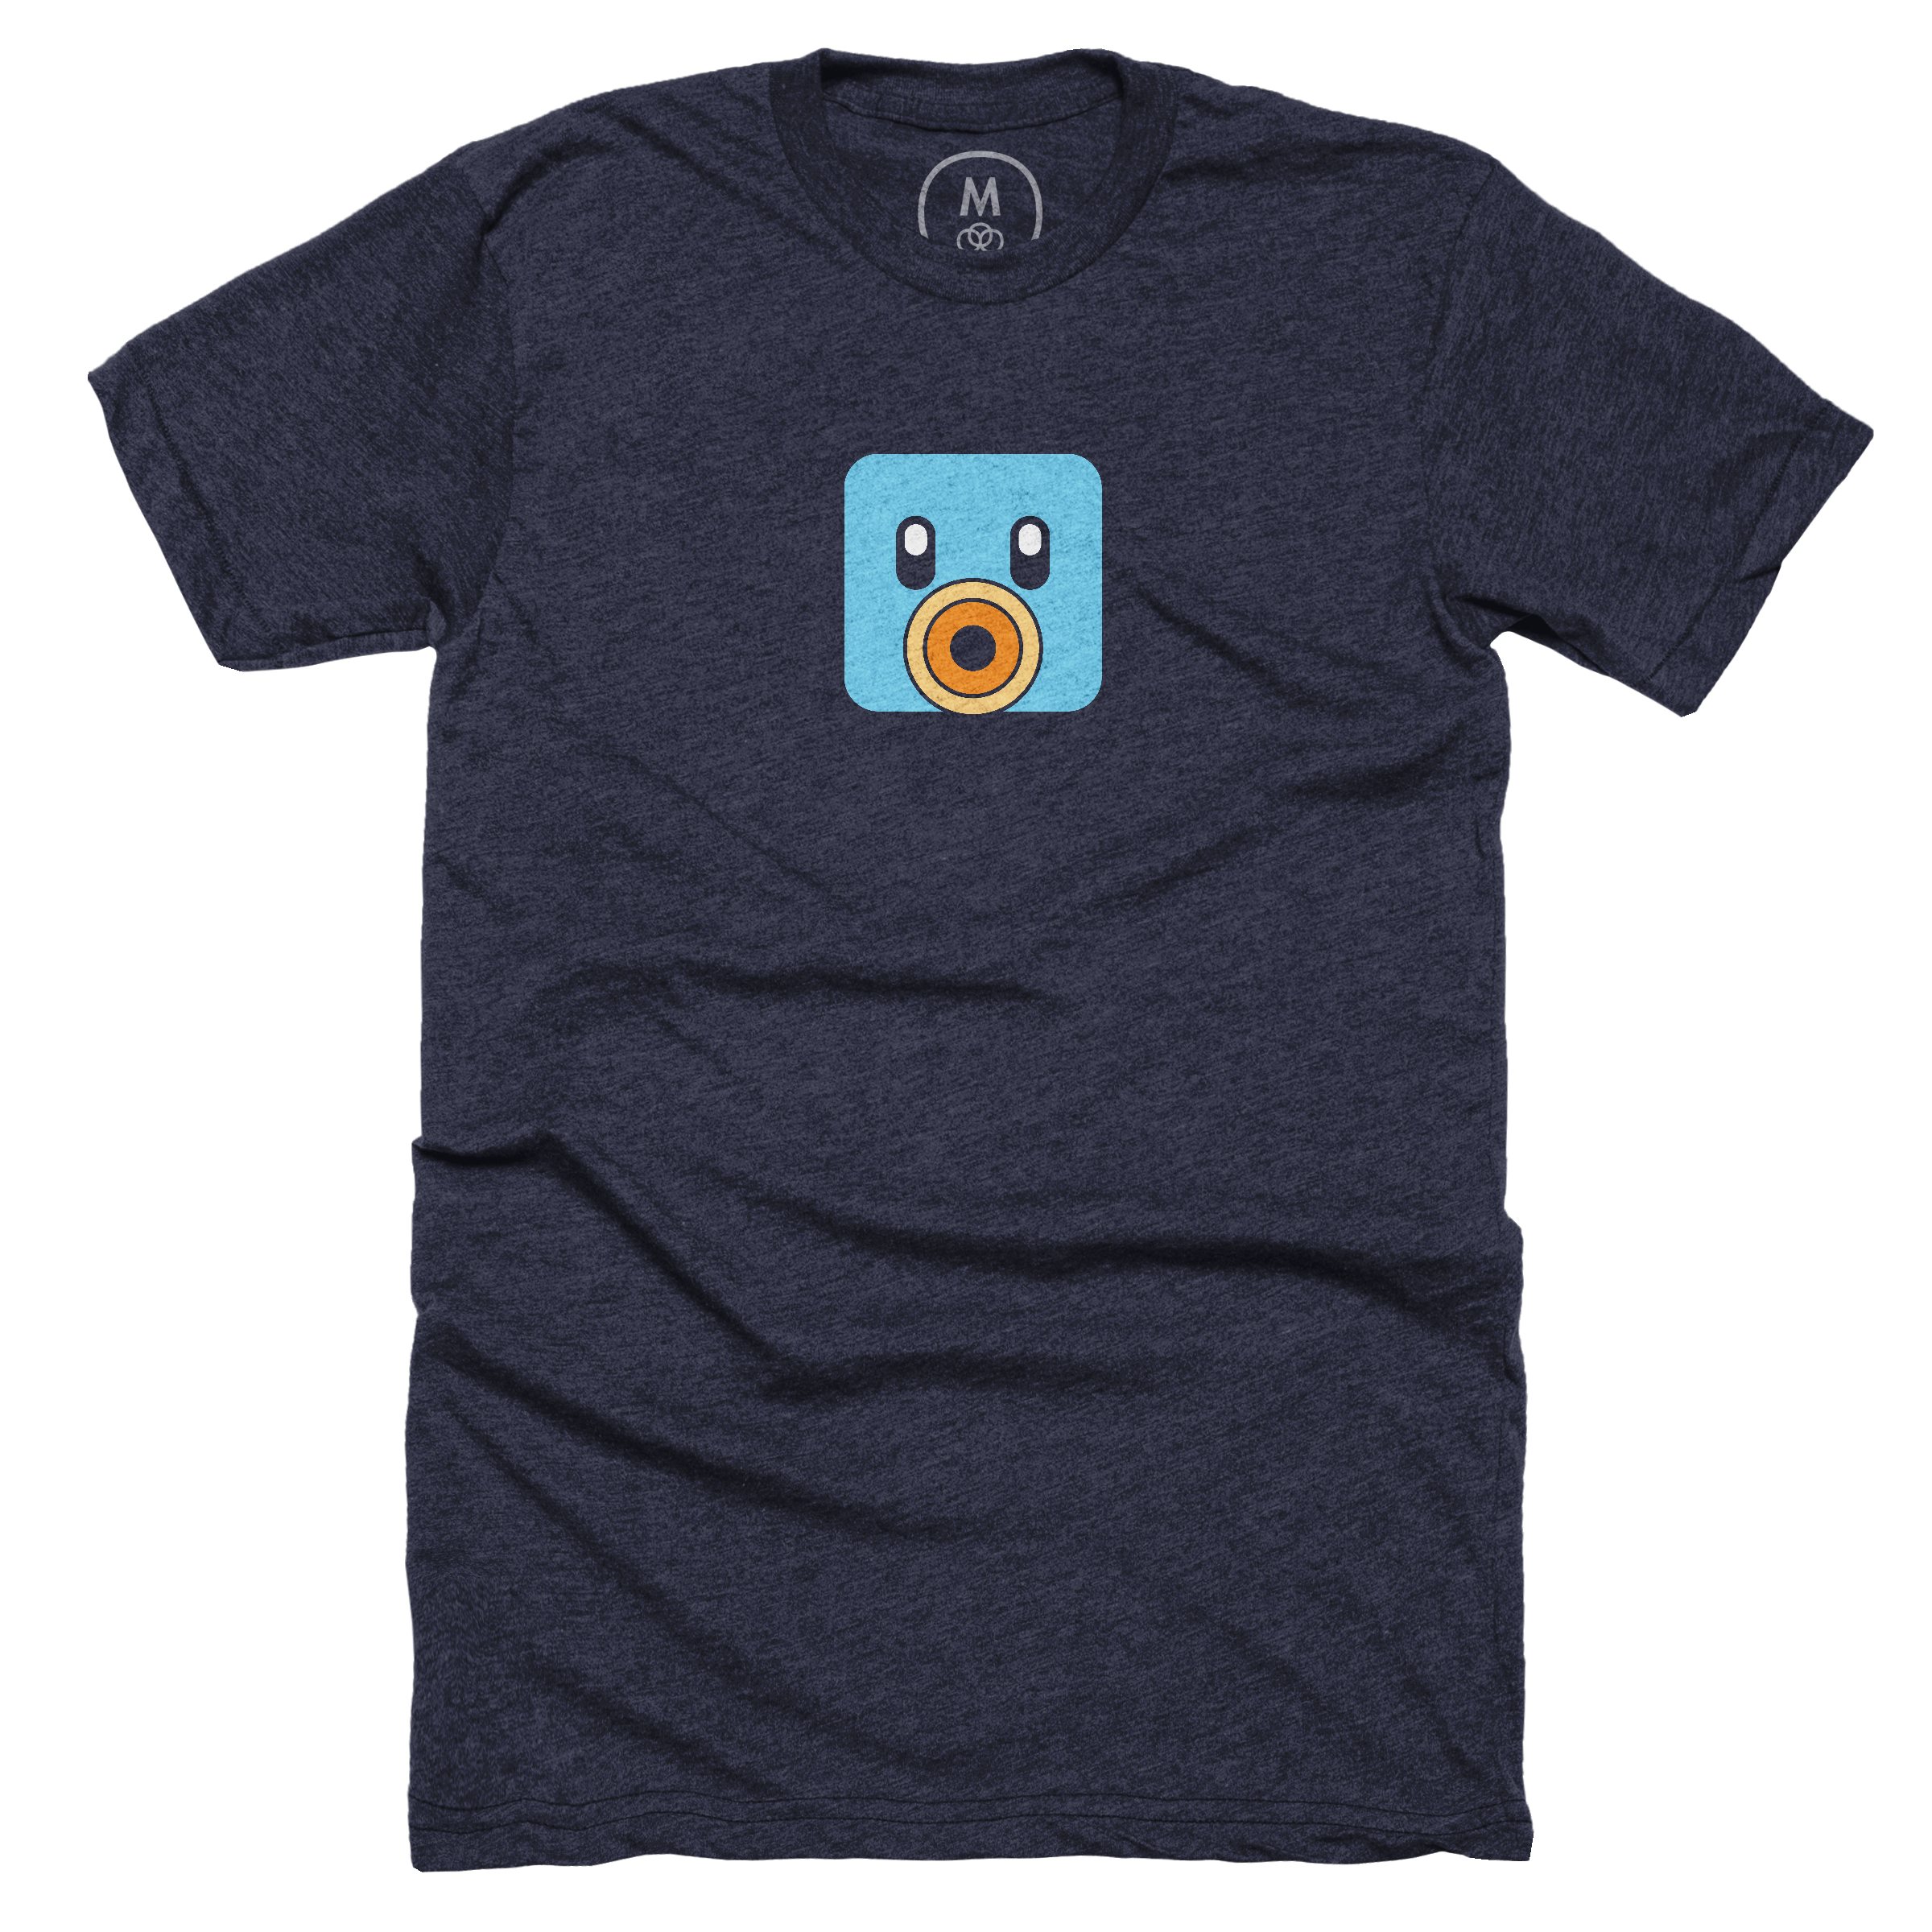 Tweetbot Midnight Blue (Men's)